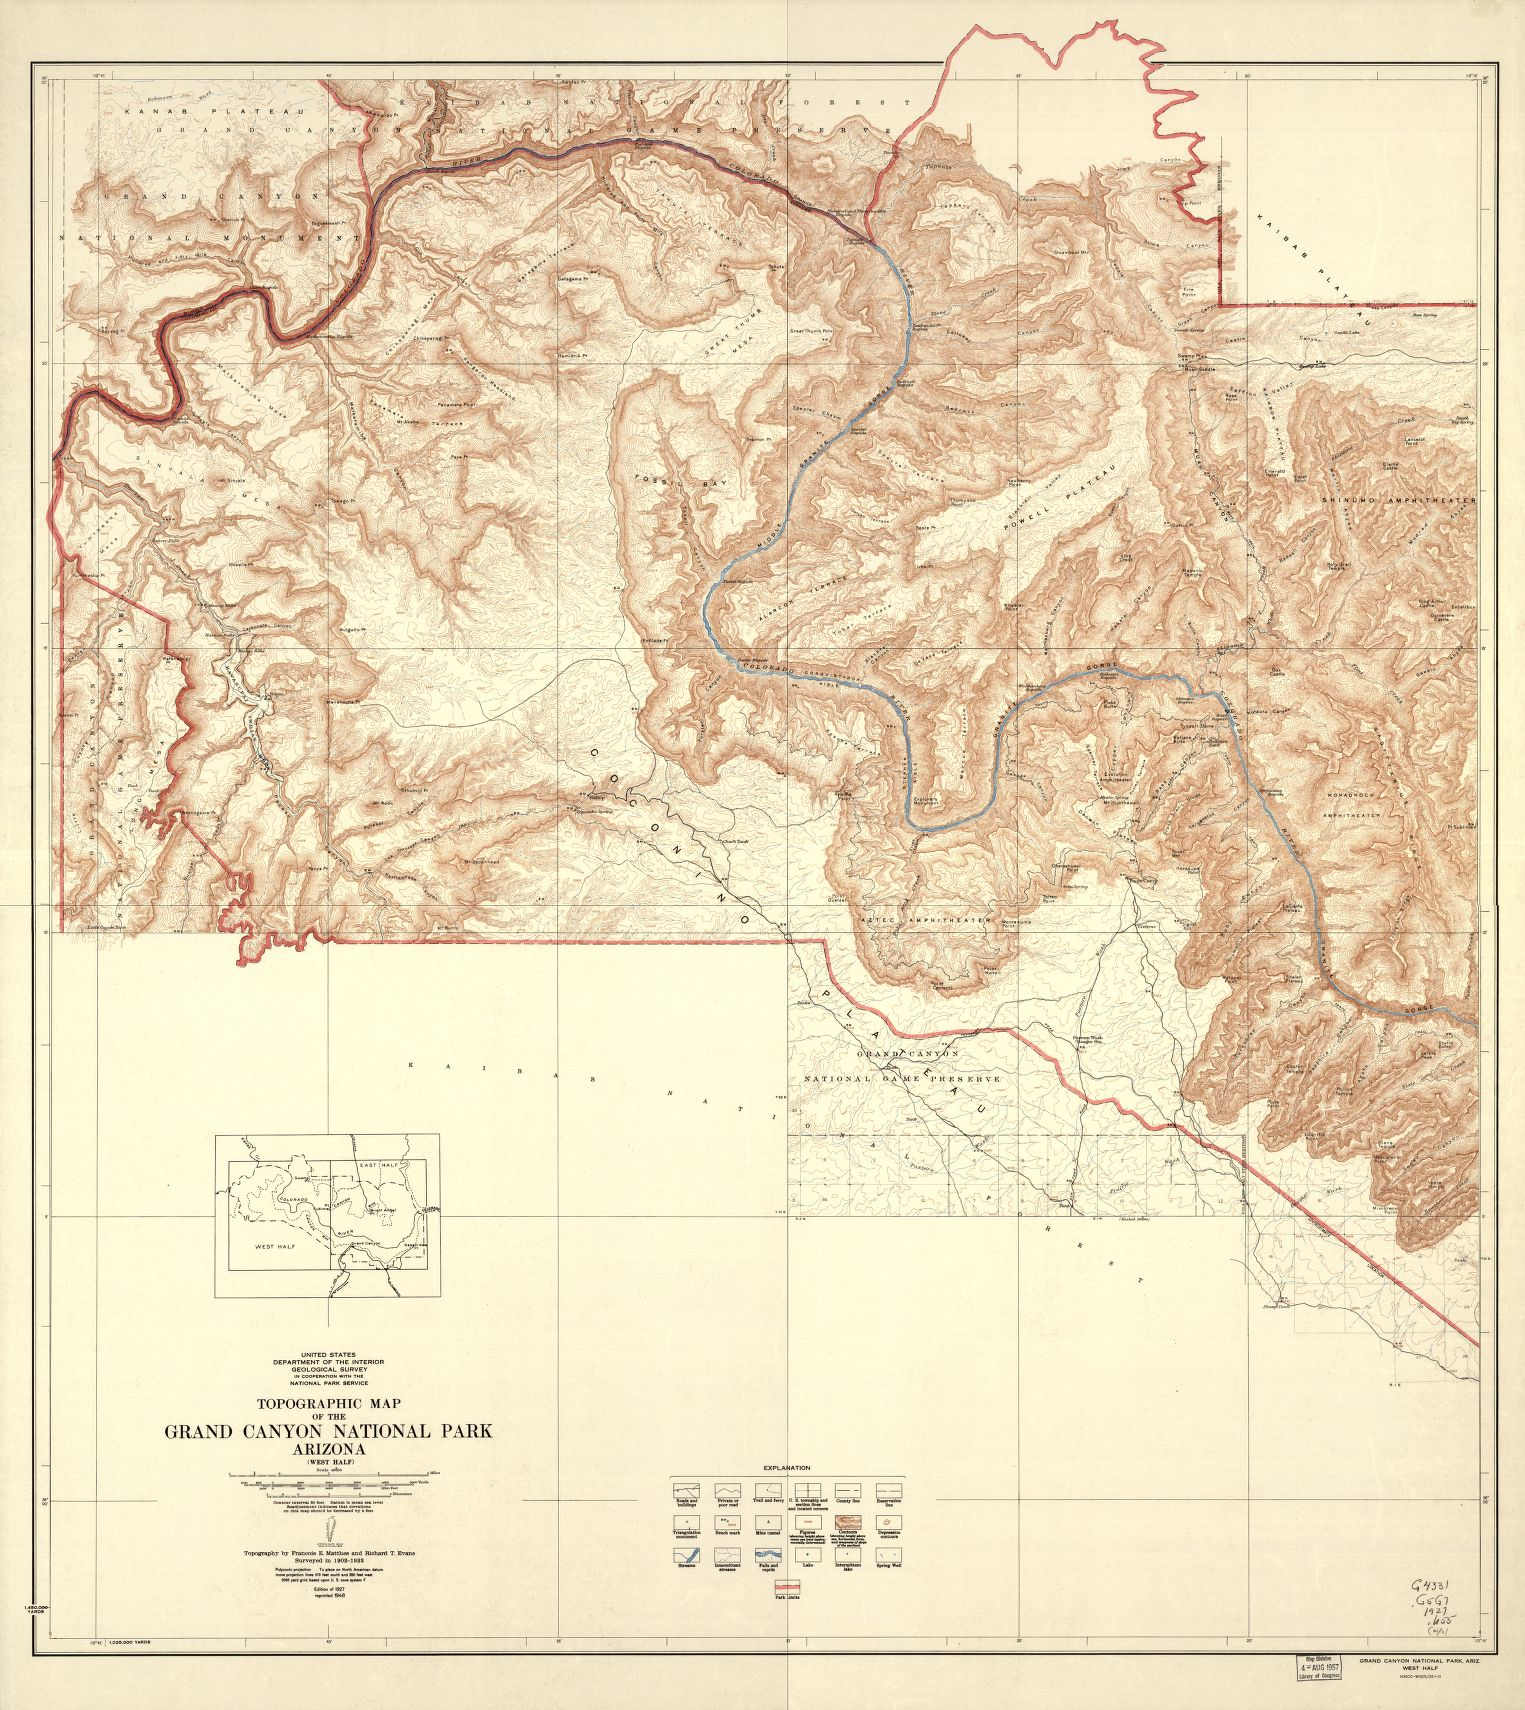 "Topographic Map Grand Canyon National Park Arizona (East Half) </br><a href=""http://www.azarchivesonline.org/xtf/view?docId=ead/nau/NAU_national_park_maps.xml"" target=""_blank"">National Parks Map Collection, NAU.MAP.101.2</a>"